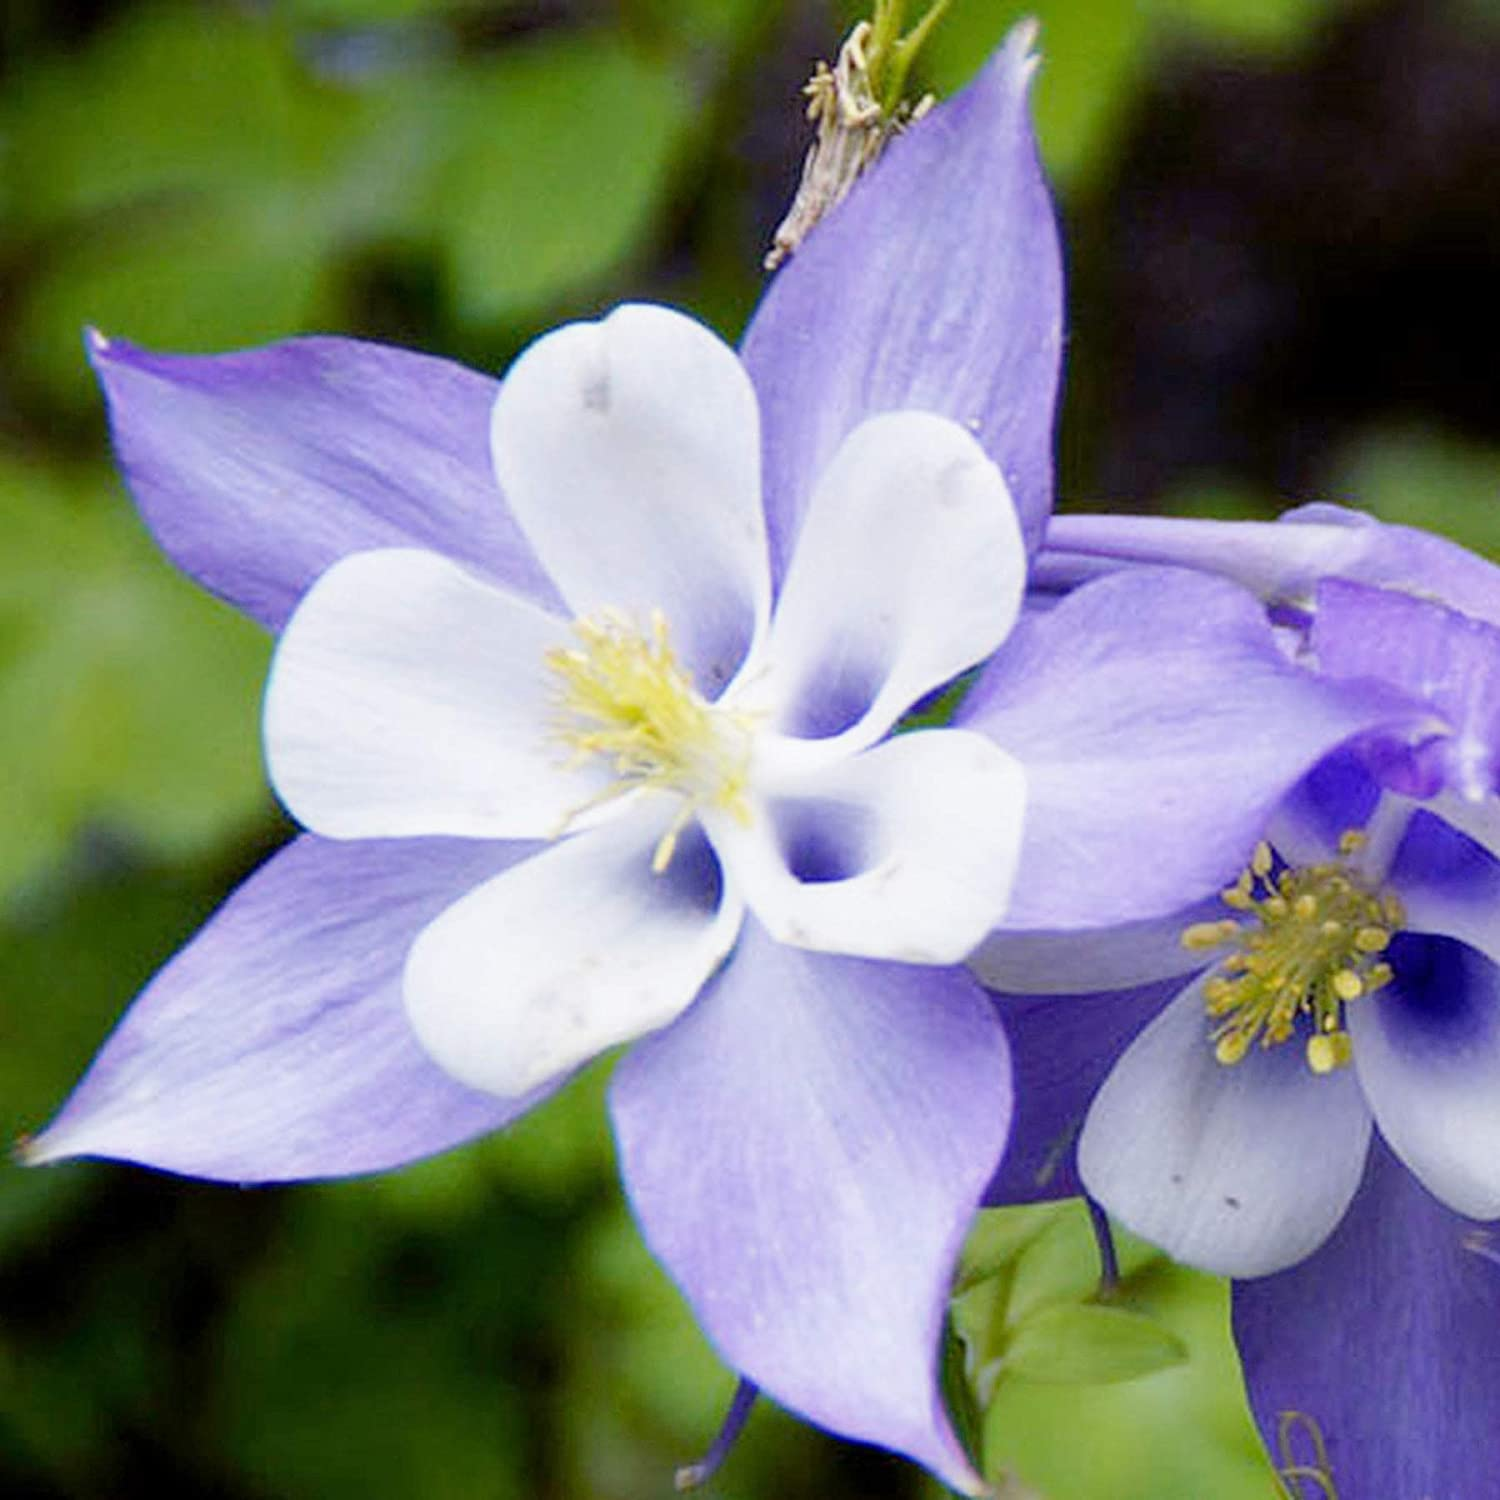 UtopiaSeeds Blue Dream Columbine Seeds - A Favorite Perennial Wildflower and State Flower of Colorado - Approximately 2800 Seeds